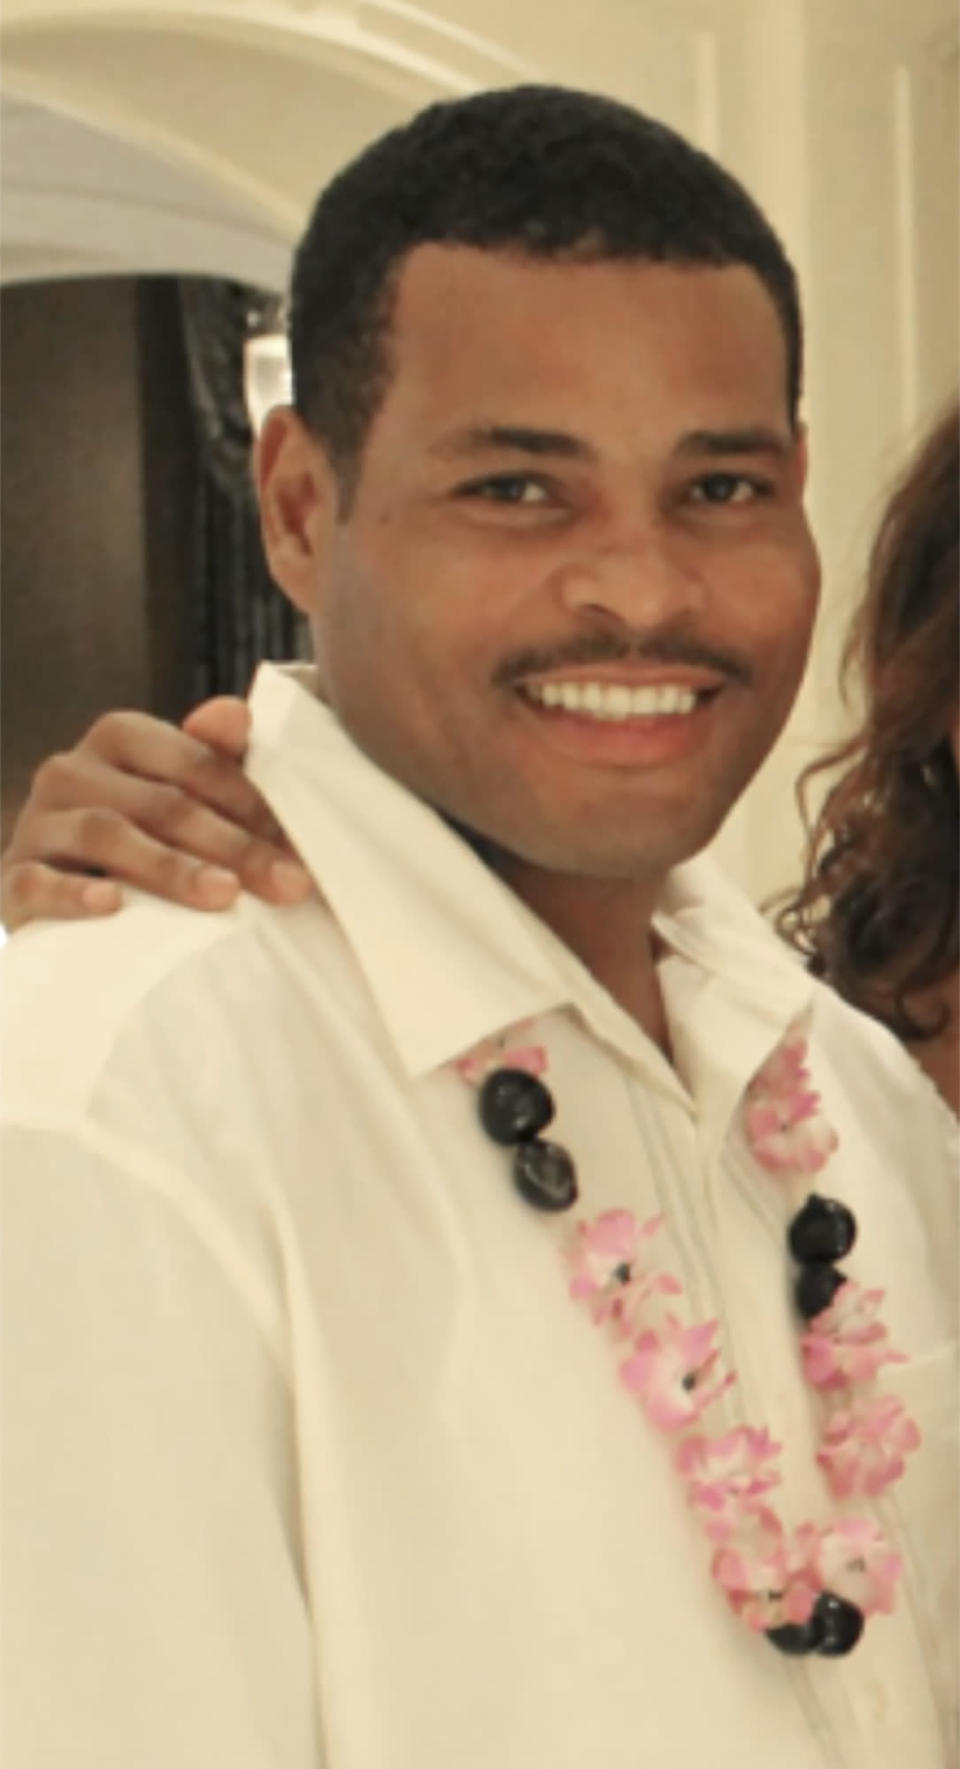 FILE - Ronald Greene smiles in an undated photo provided by his family. More than a year and a half after Louisiana state troopers were captured on body camera video brutalizing Greene during his fatal arrest, police brass were still trying to blame his death on a car crash at the end of a high-speed chase. (Courtesy of the Greene family via AP, File)